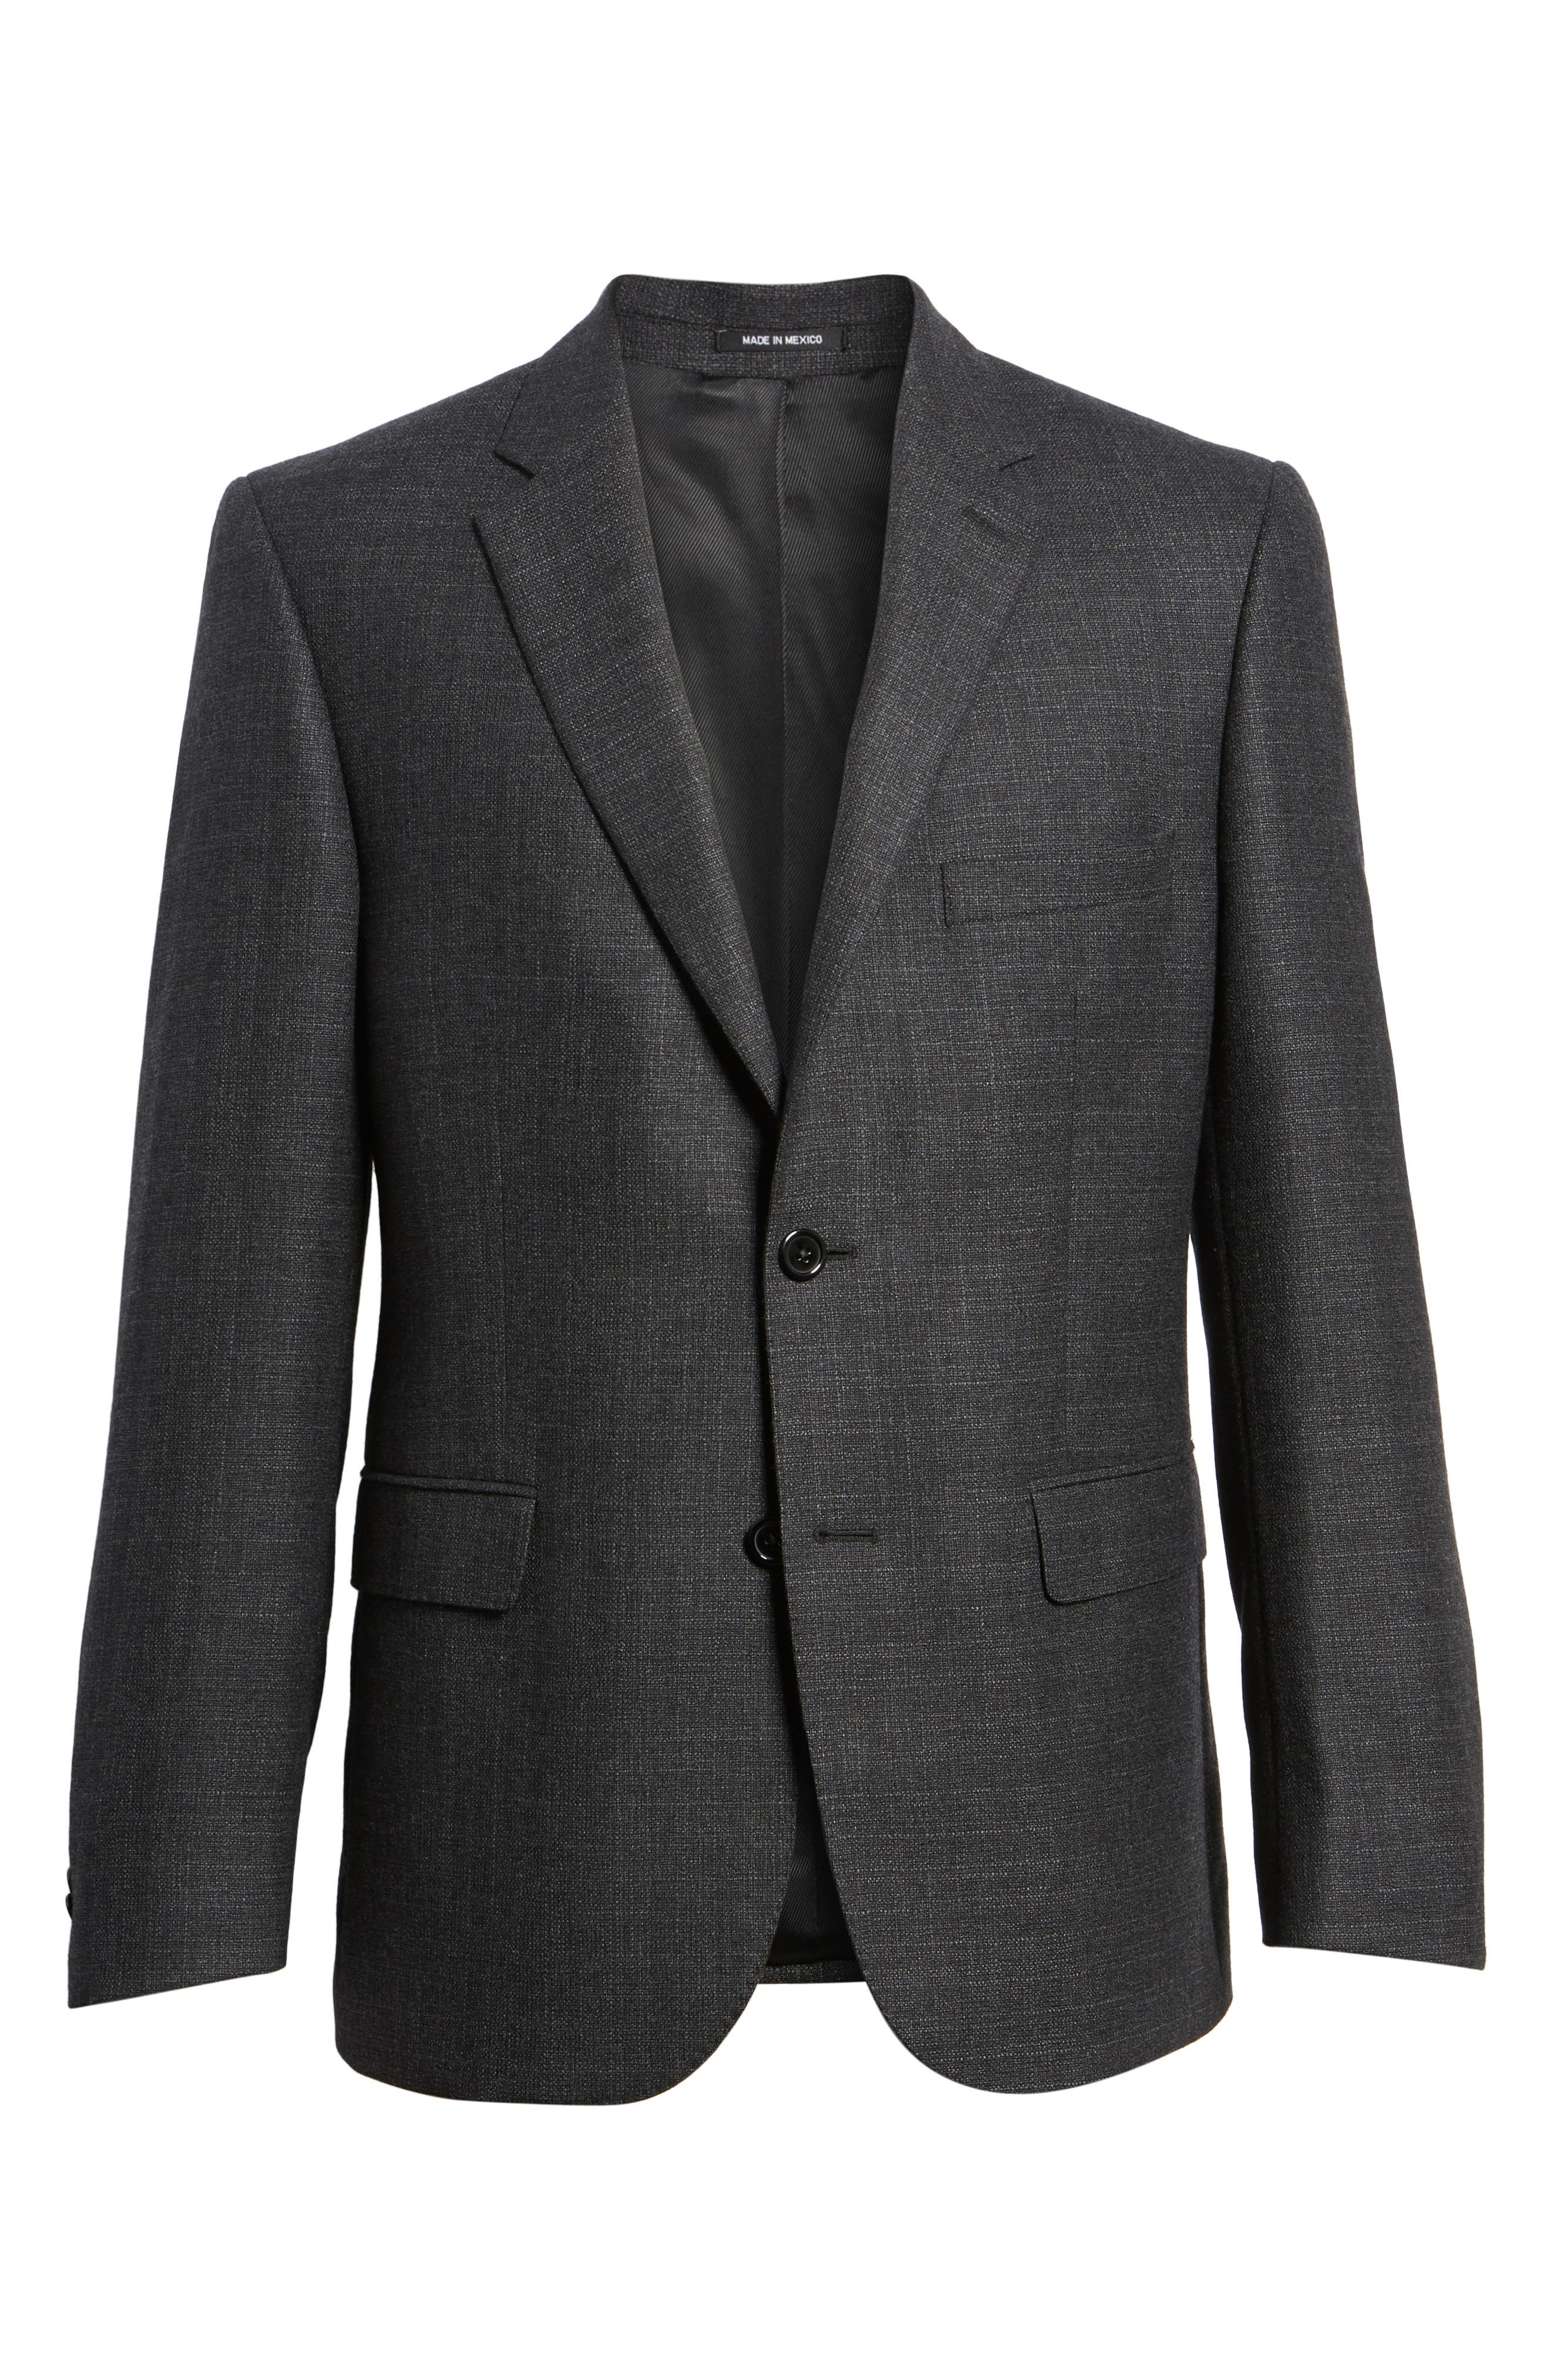 Classic Fit Wool Blazer,                             Alternate thumbnail 6, color,                             Charcoal